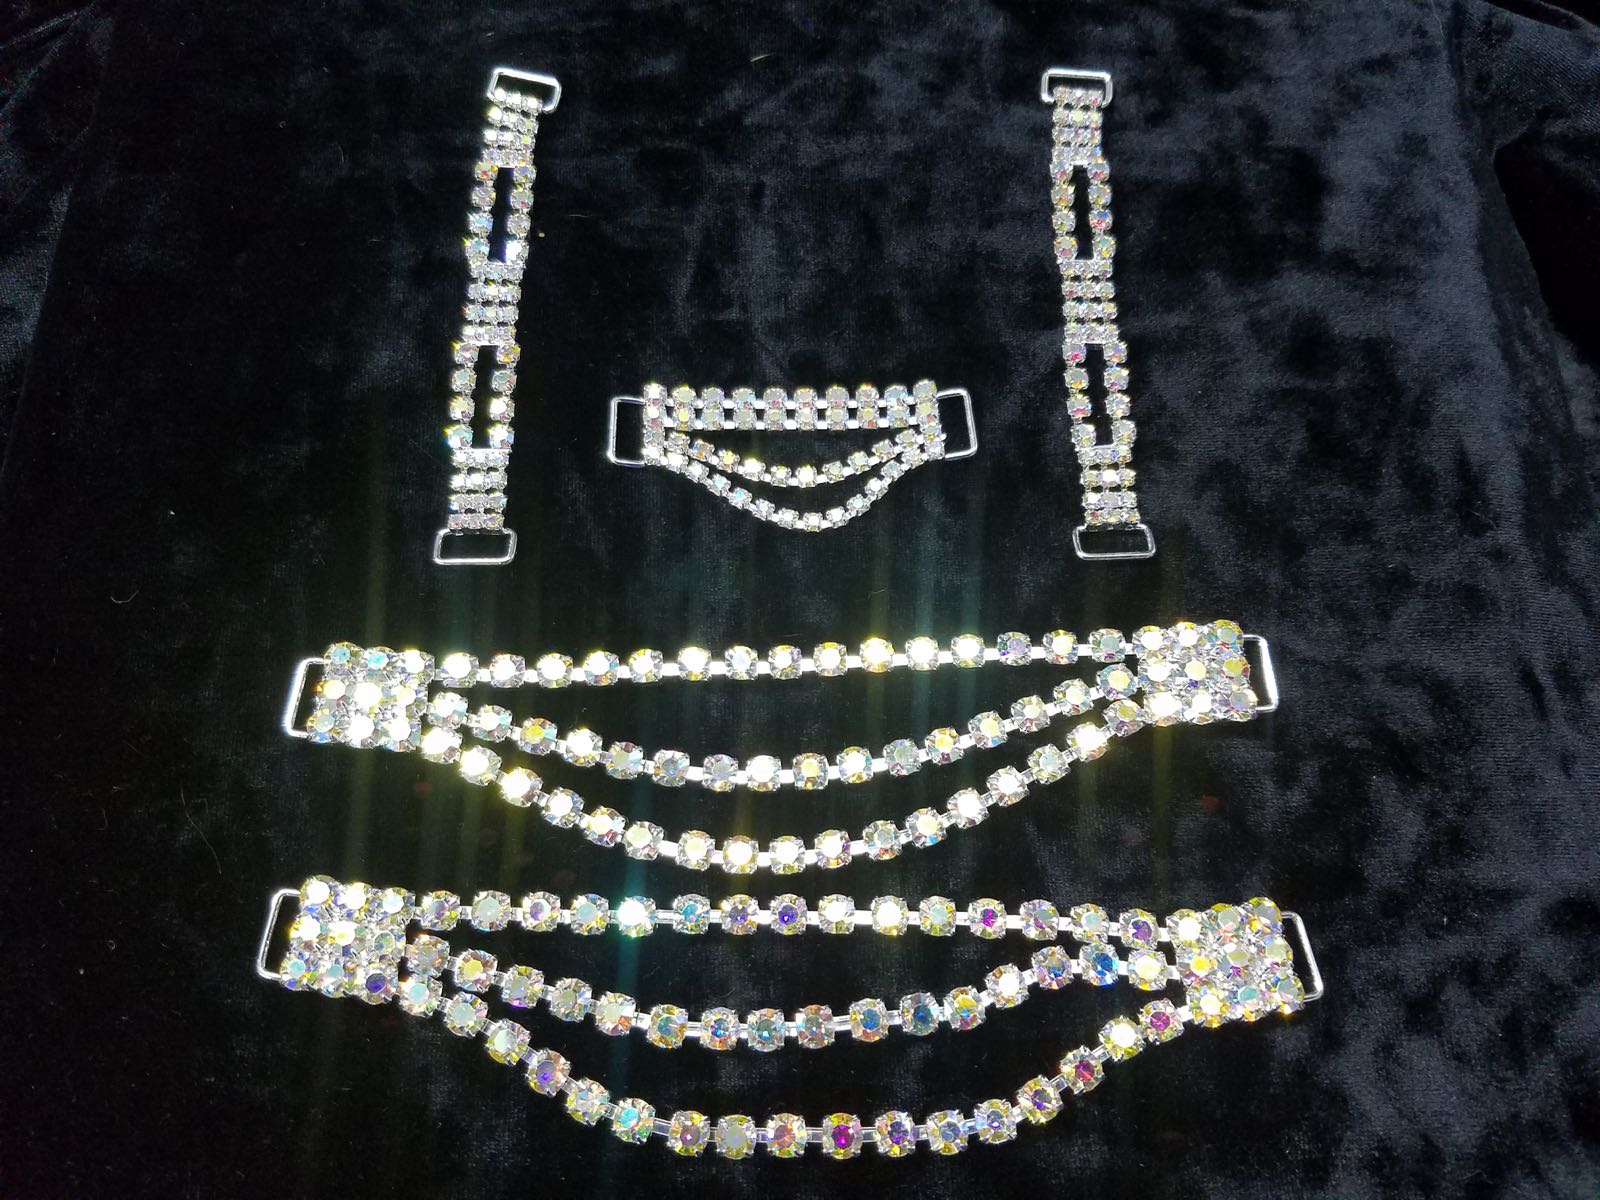 Set K, Silver with clear aurora borealis crystals, $65.00